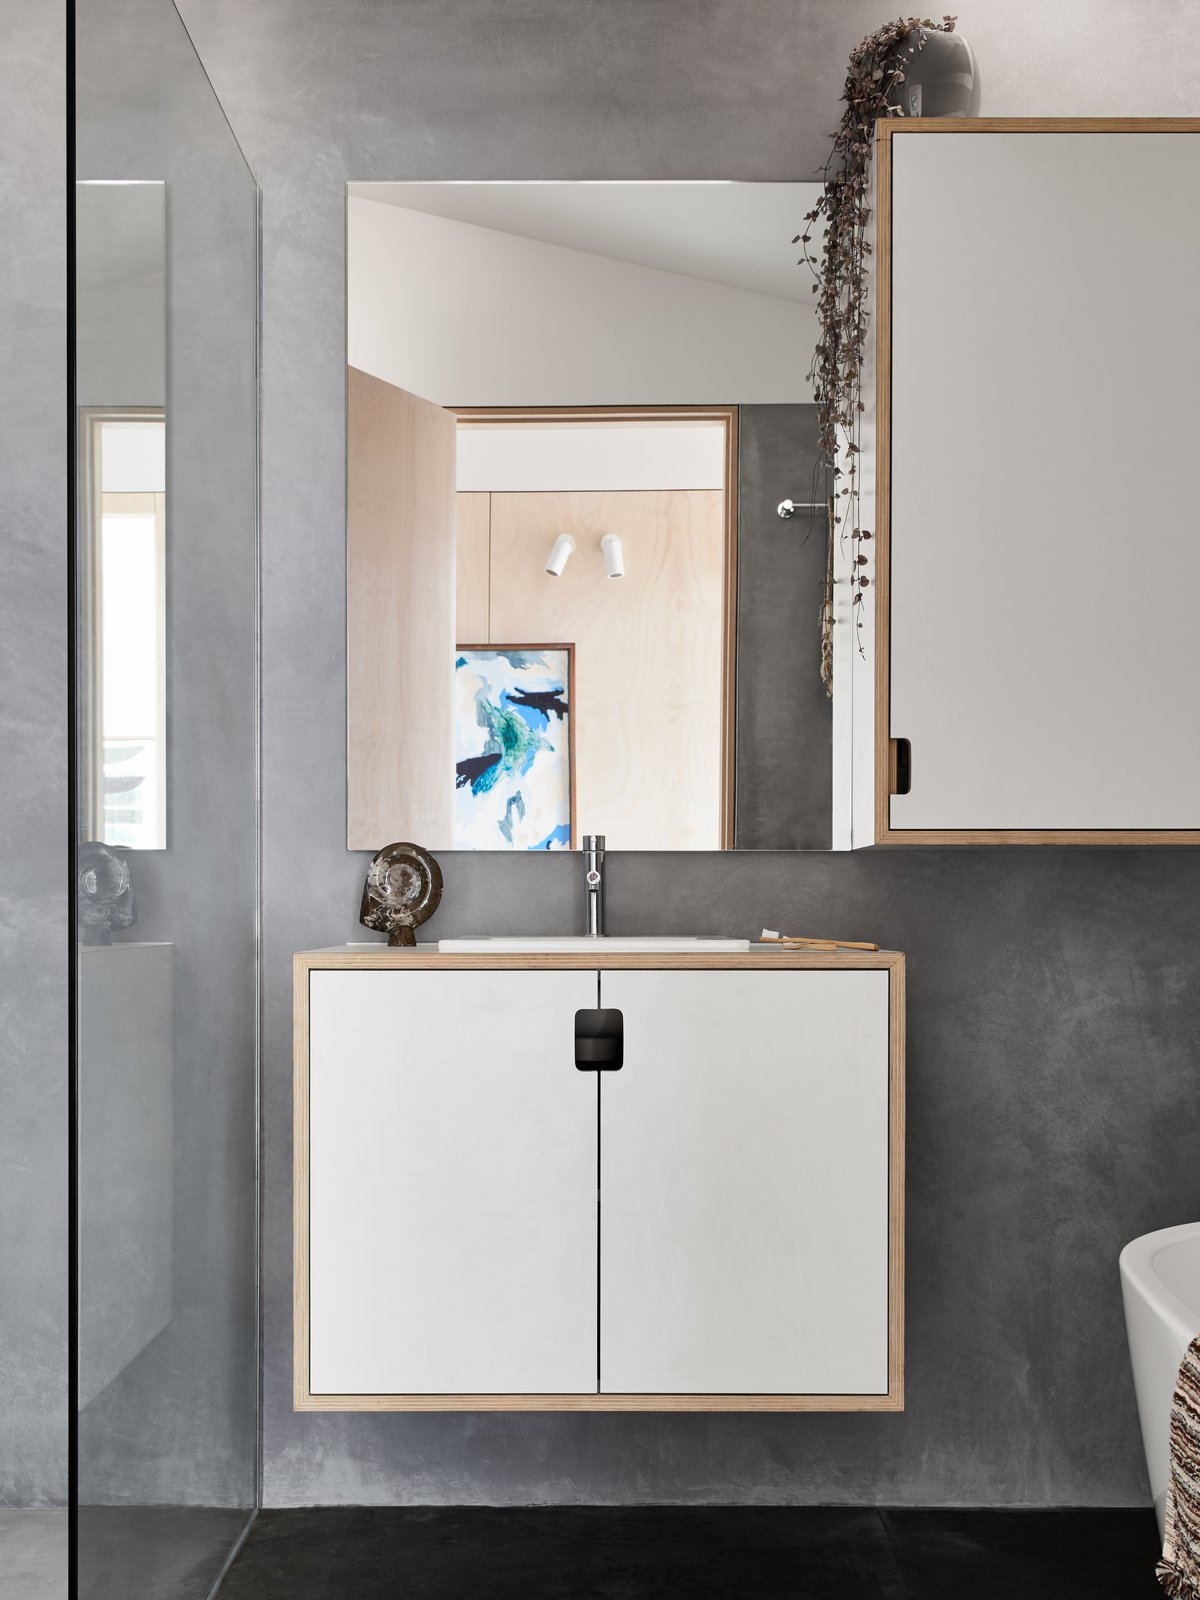 Main bathroom featuring natural, non-toxic marrakech render on walls and wet areas. Tagged: Bath Room, Concrete Floor, Wood Counter, Drop In Sink, Concrete Wall, and One Piece Toilet.  The 10 Star Home by The Sociable Weaver